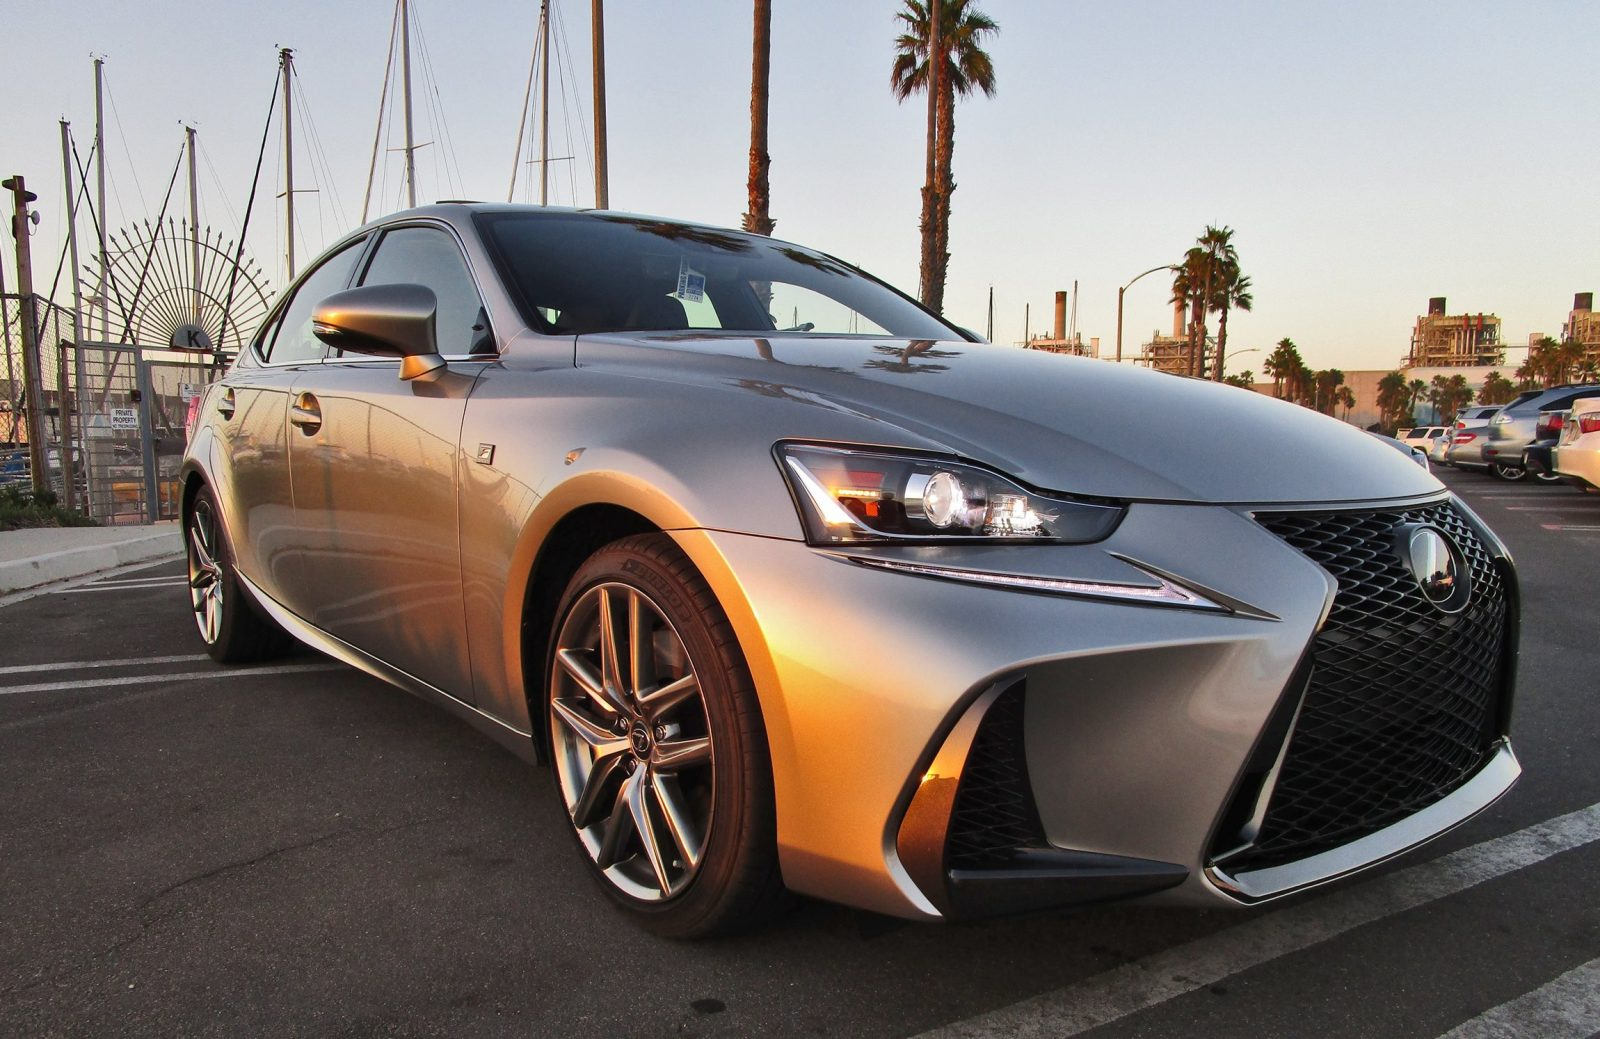 2017 lexus is350 f sport road test review by ben lewis. Black Bedroom Furniture Sets. Home Design Ideas